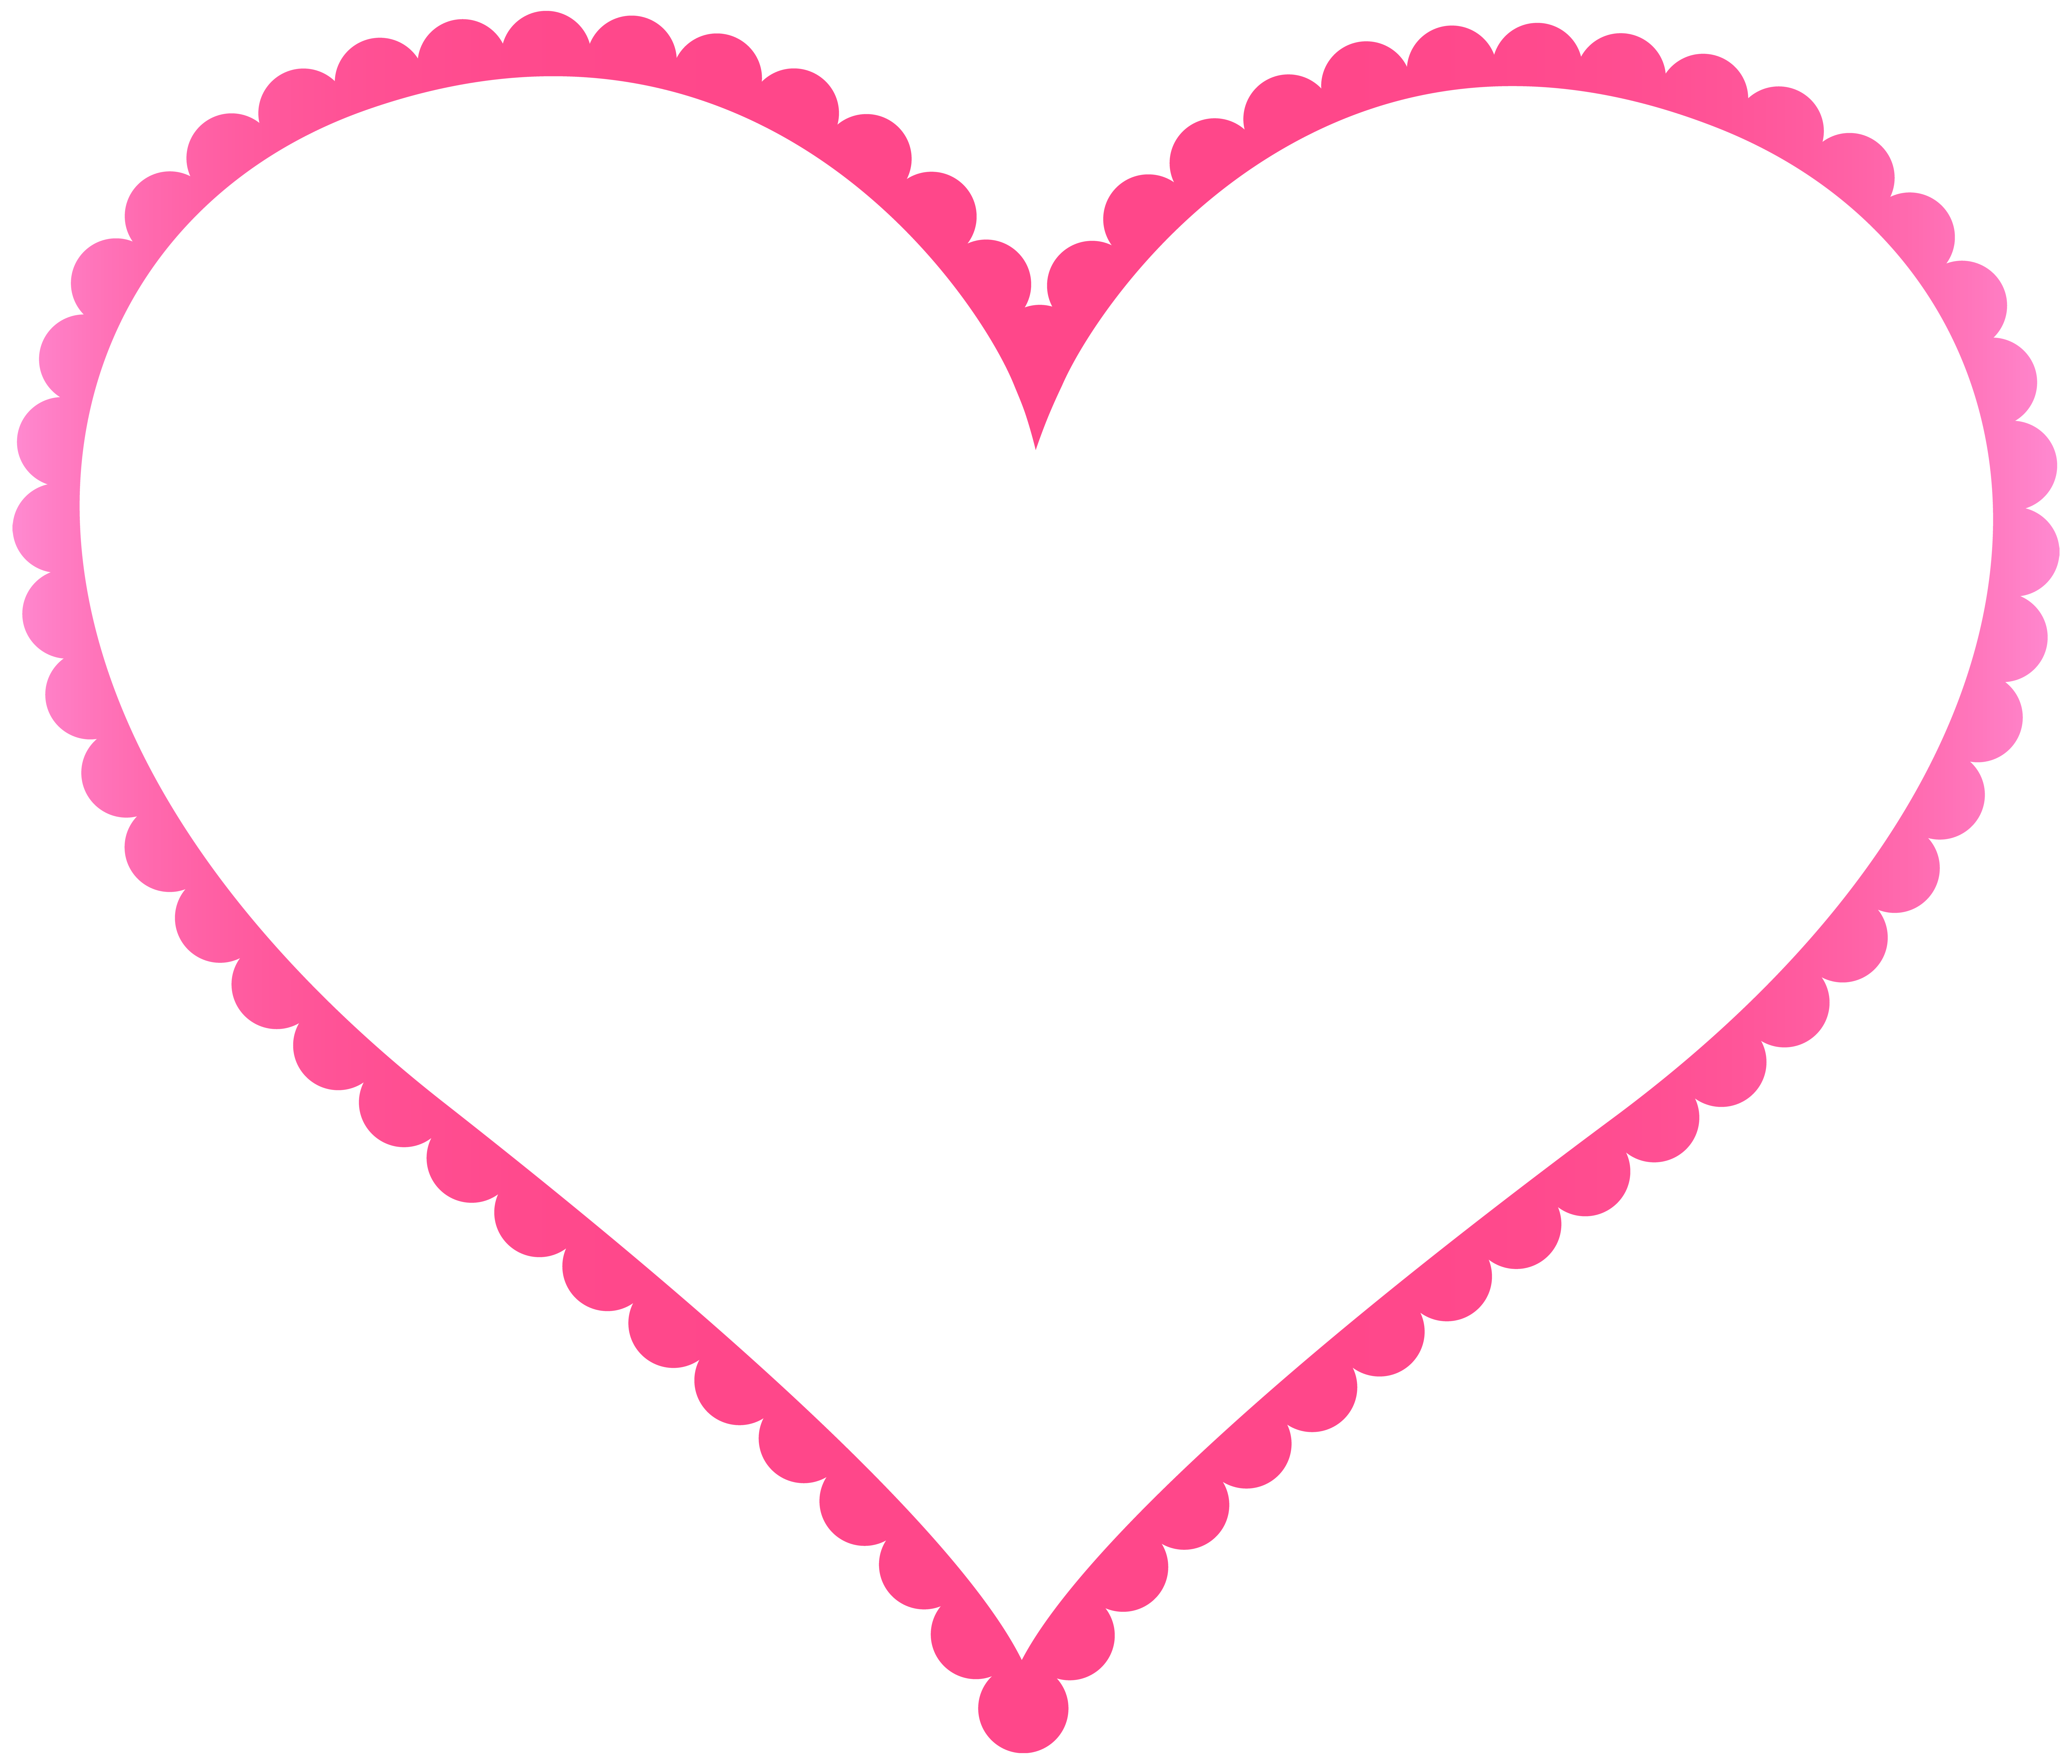 Heart bubbles clipart png https://gallery.yopriceville.com/Free-Clipart-Pictures/Decorative ... png